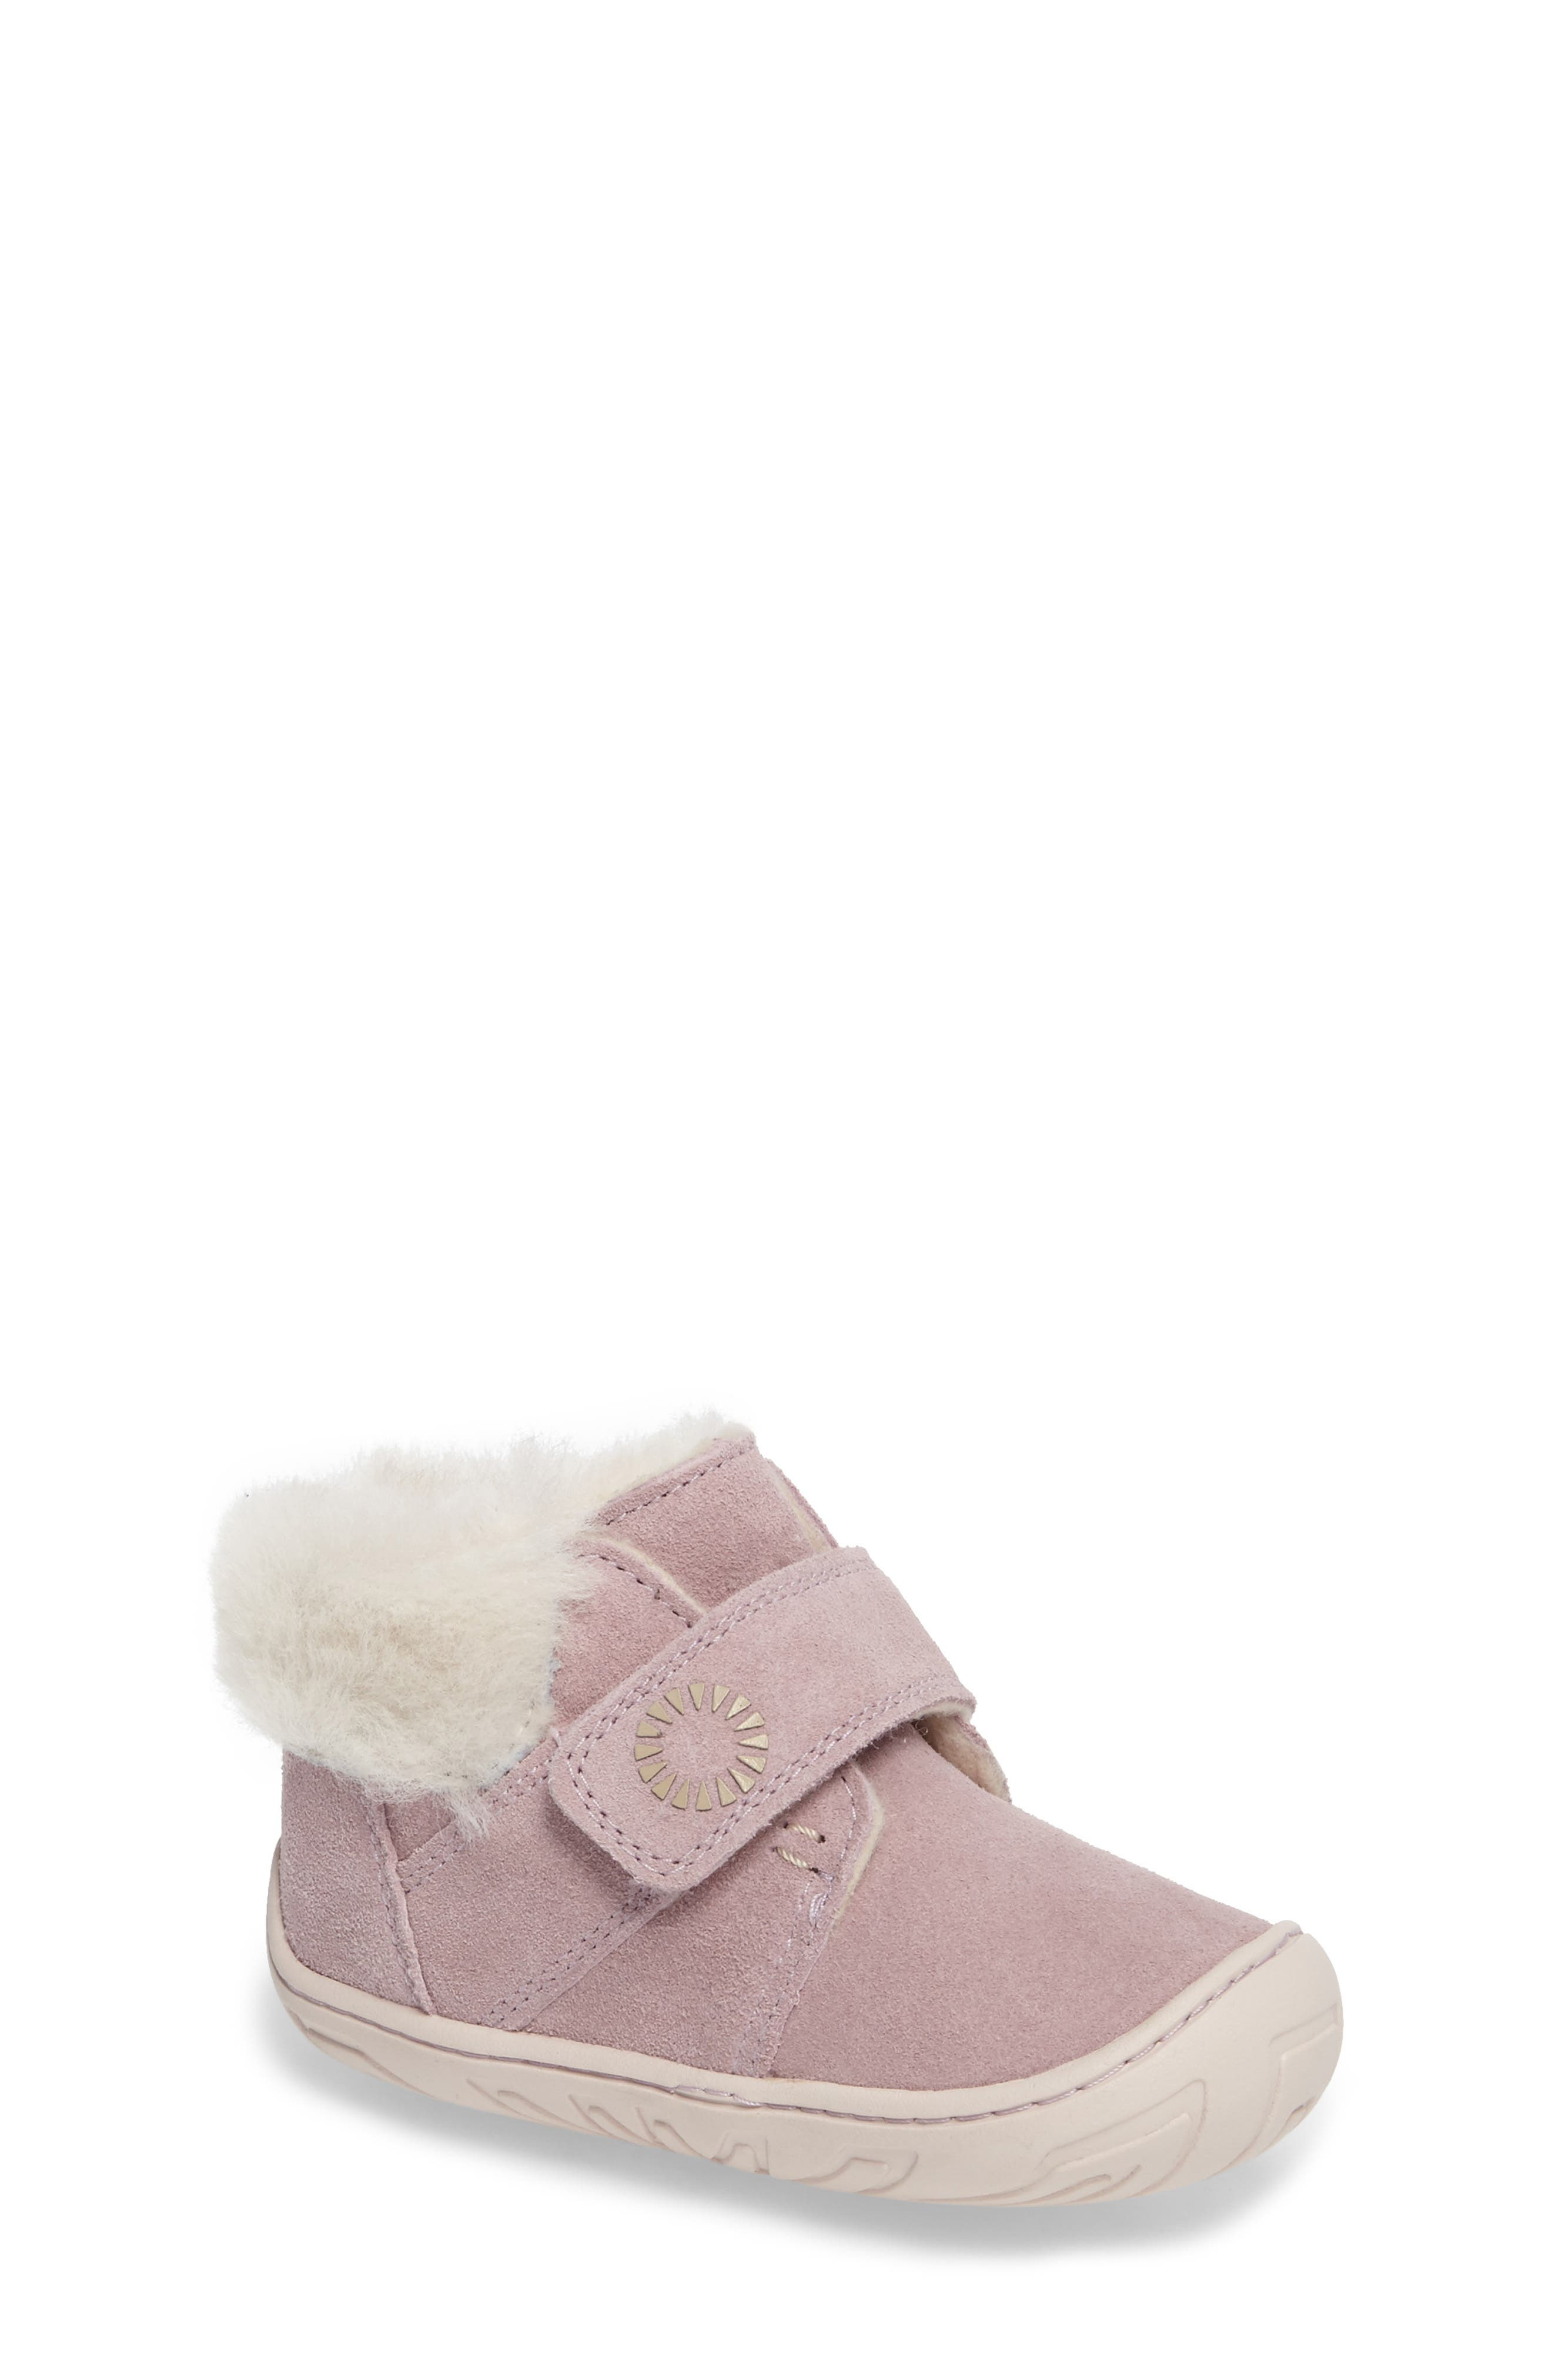 Main Image - UGG® Jorgen Genuine Shearling Bootie (Baby, Walker & Toddler)